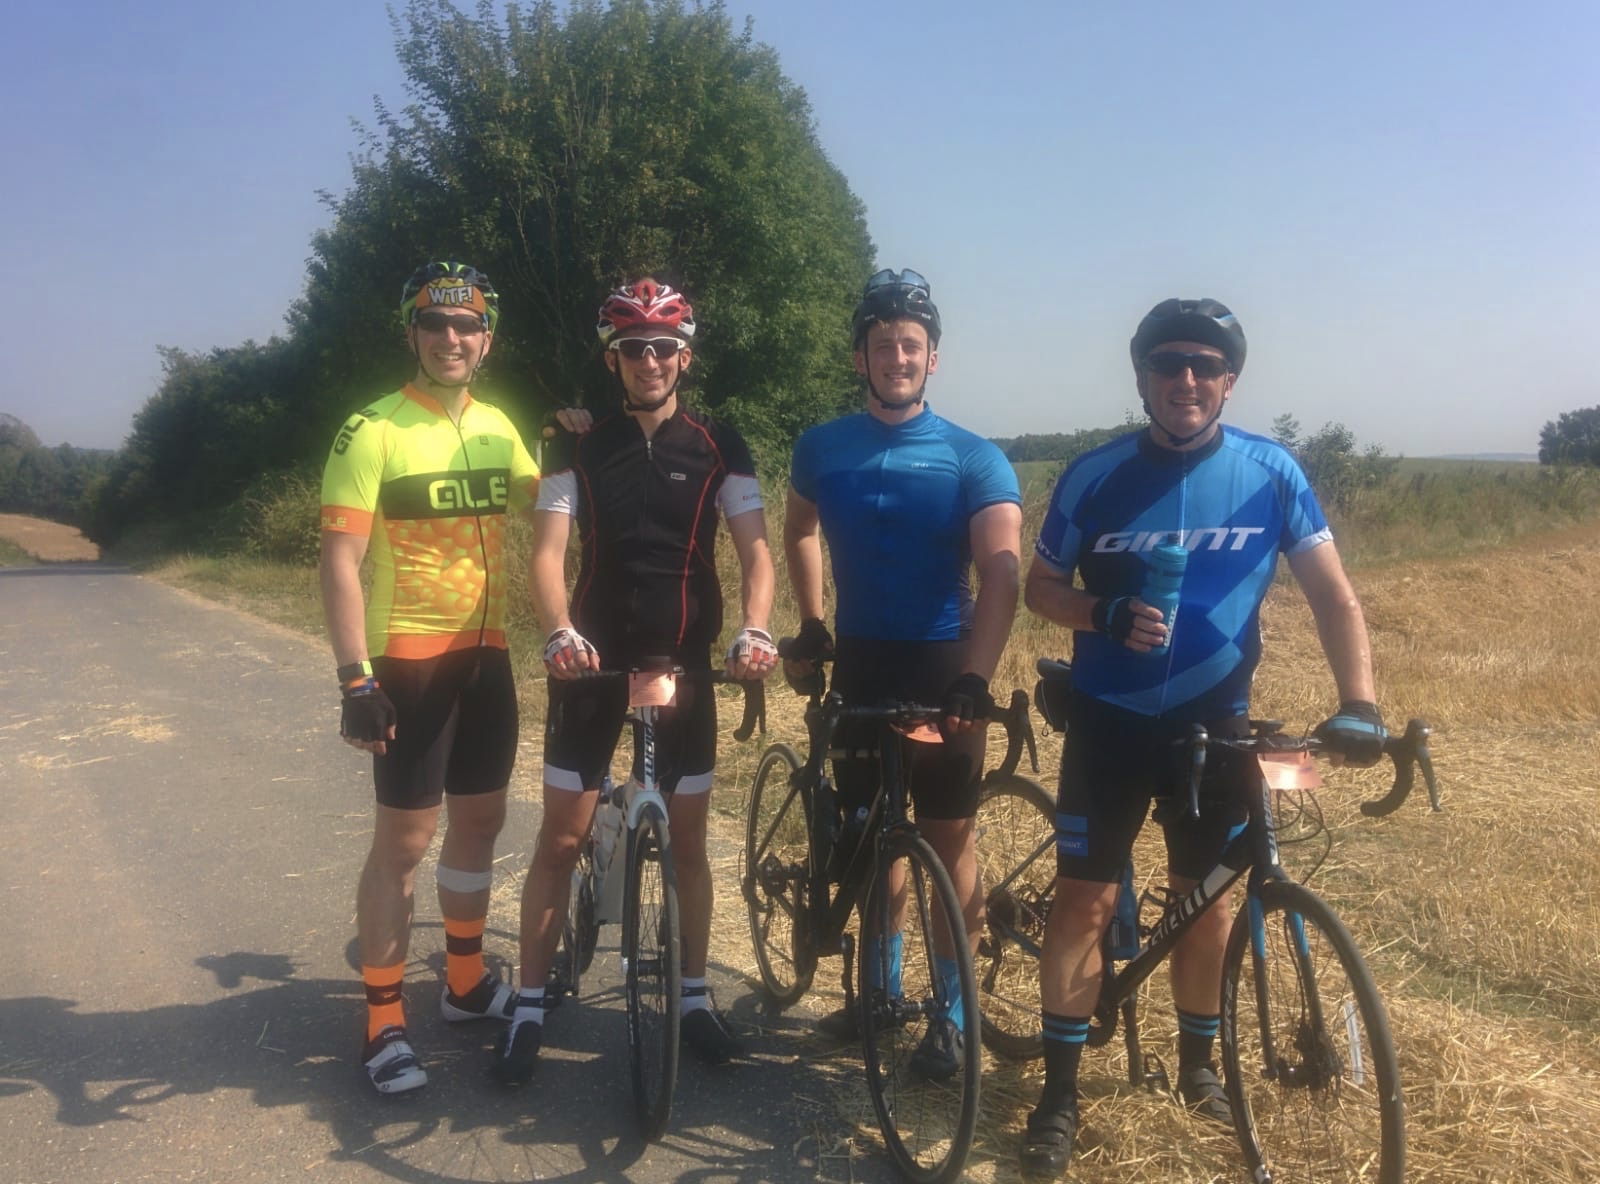 London to Paris Cycle Challenge 2018 - The Boys Day 2